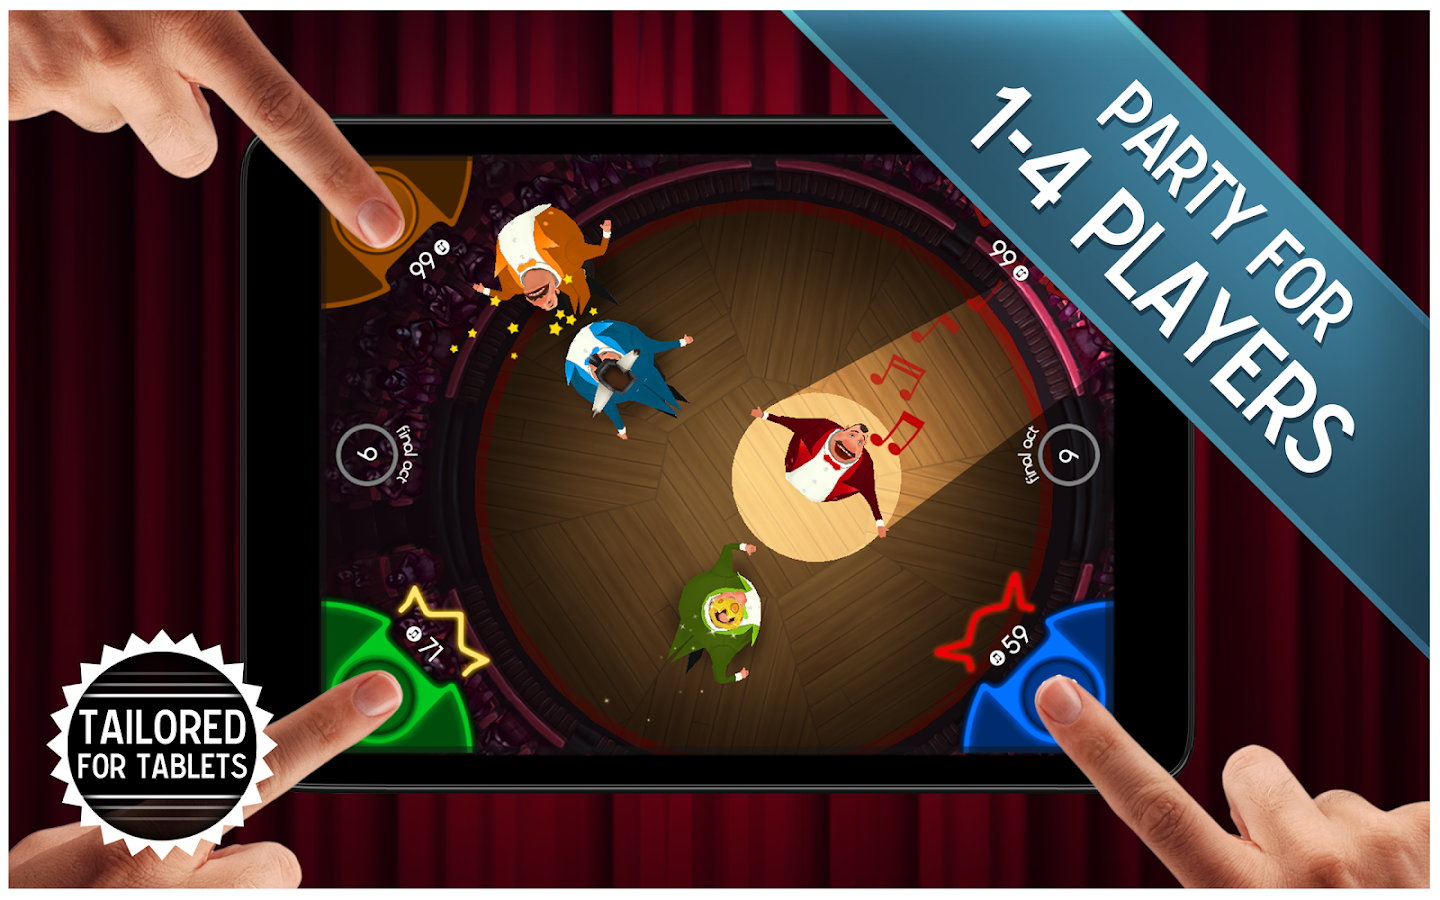 King of Opera - Party Game! Screenshot 1